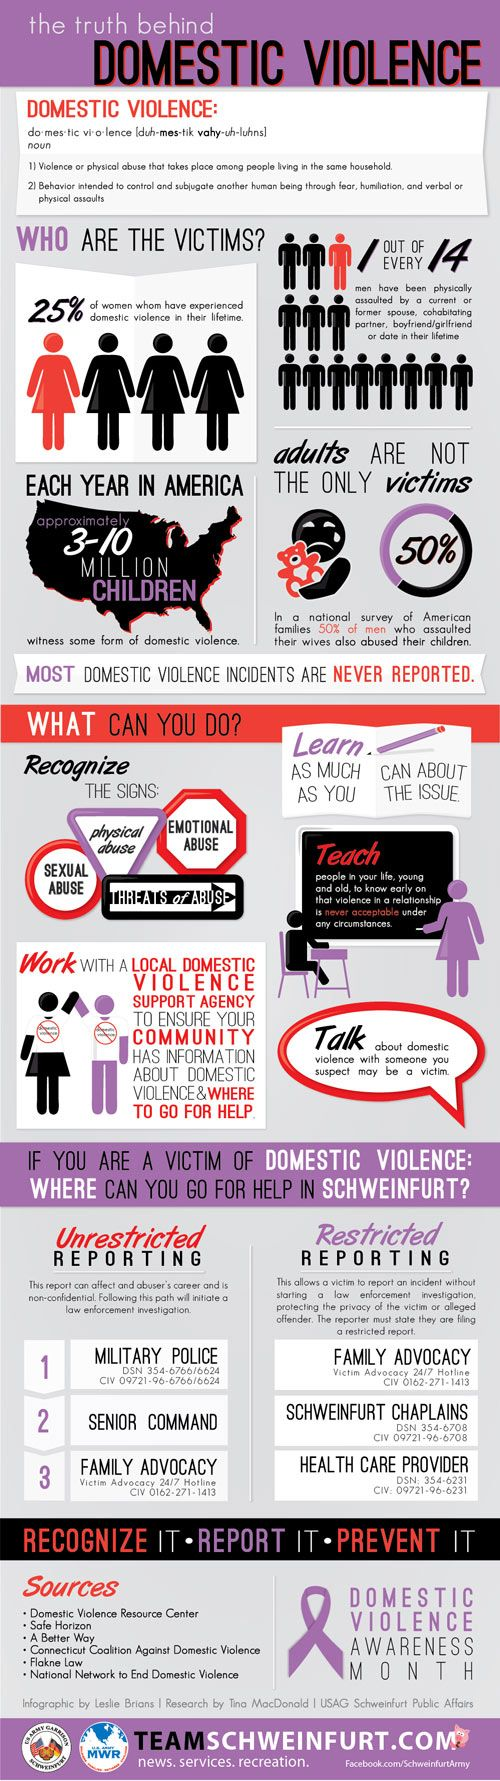 domestic violence informative 11 facts about domestic and dating violence domestic violence is the leading cause of injury to women – more than car accidents, muggings, and rapes combined.